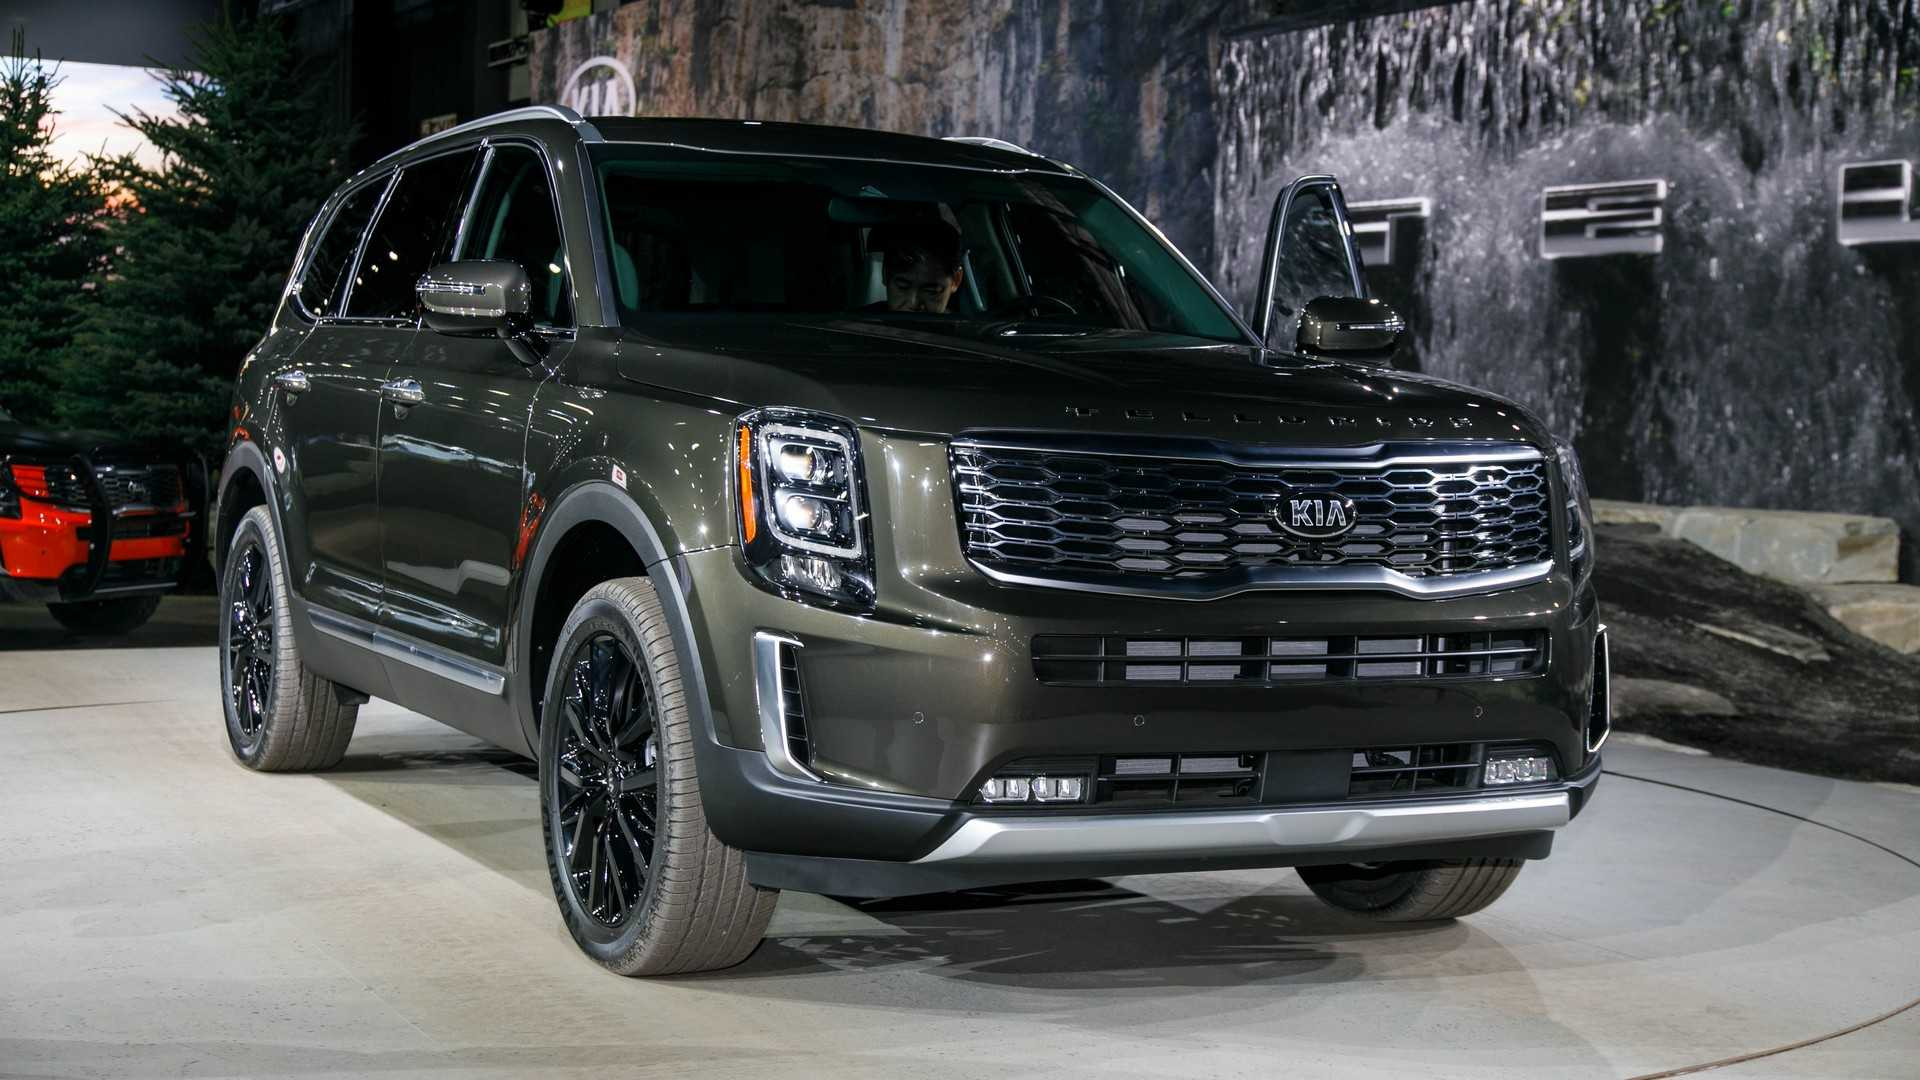 95 Gallery of Kia 2020 Telluride Exterior and Interior by Kia 2020 1920x1080